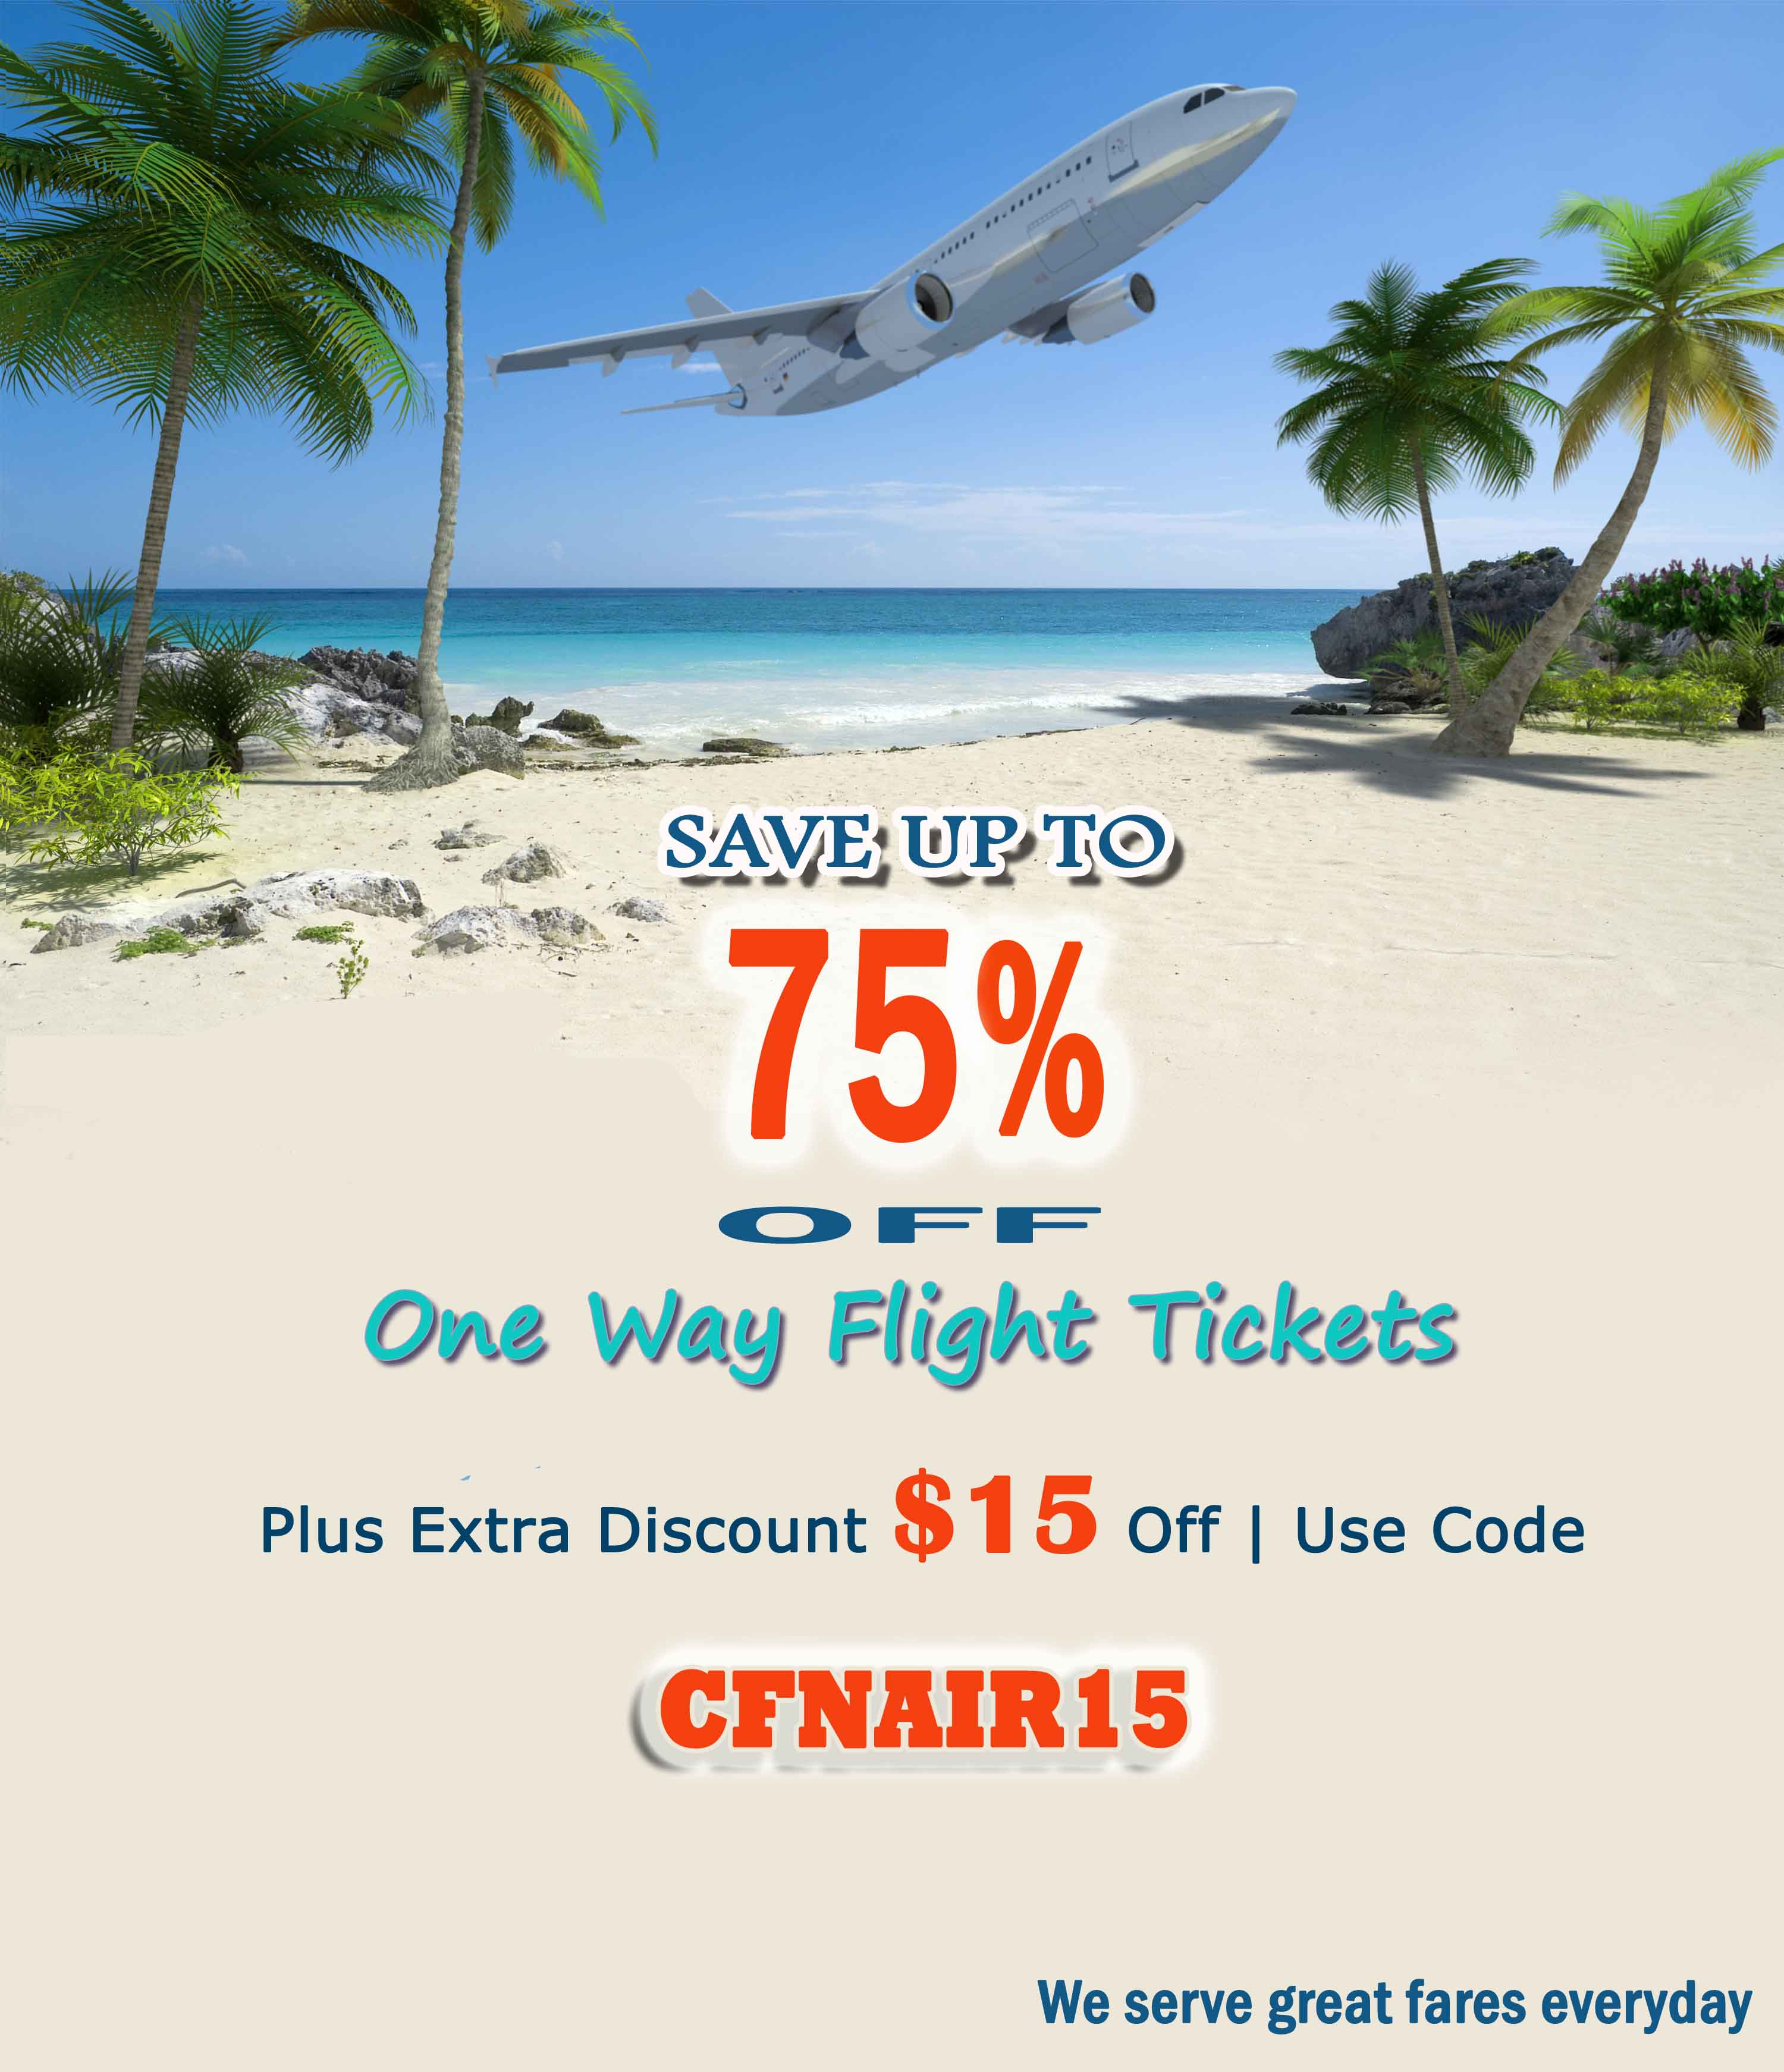 Mmt flight coupons today